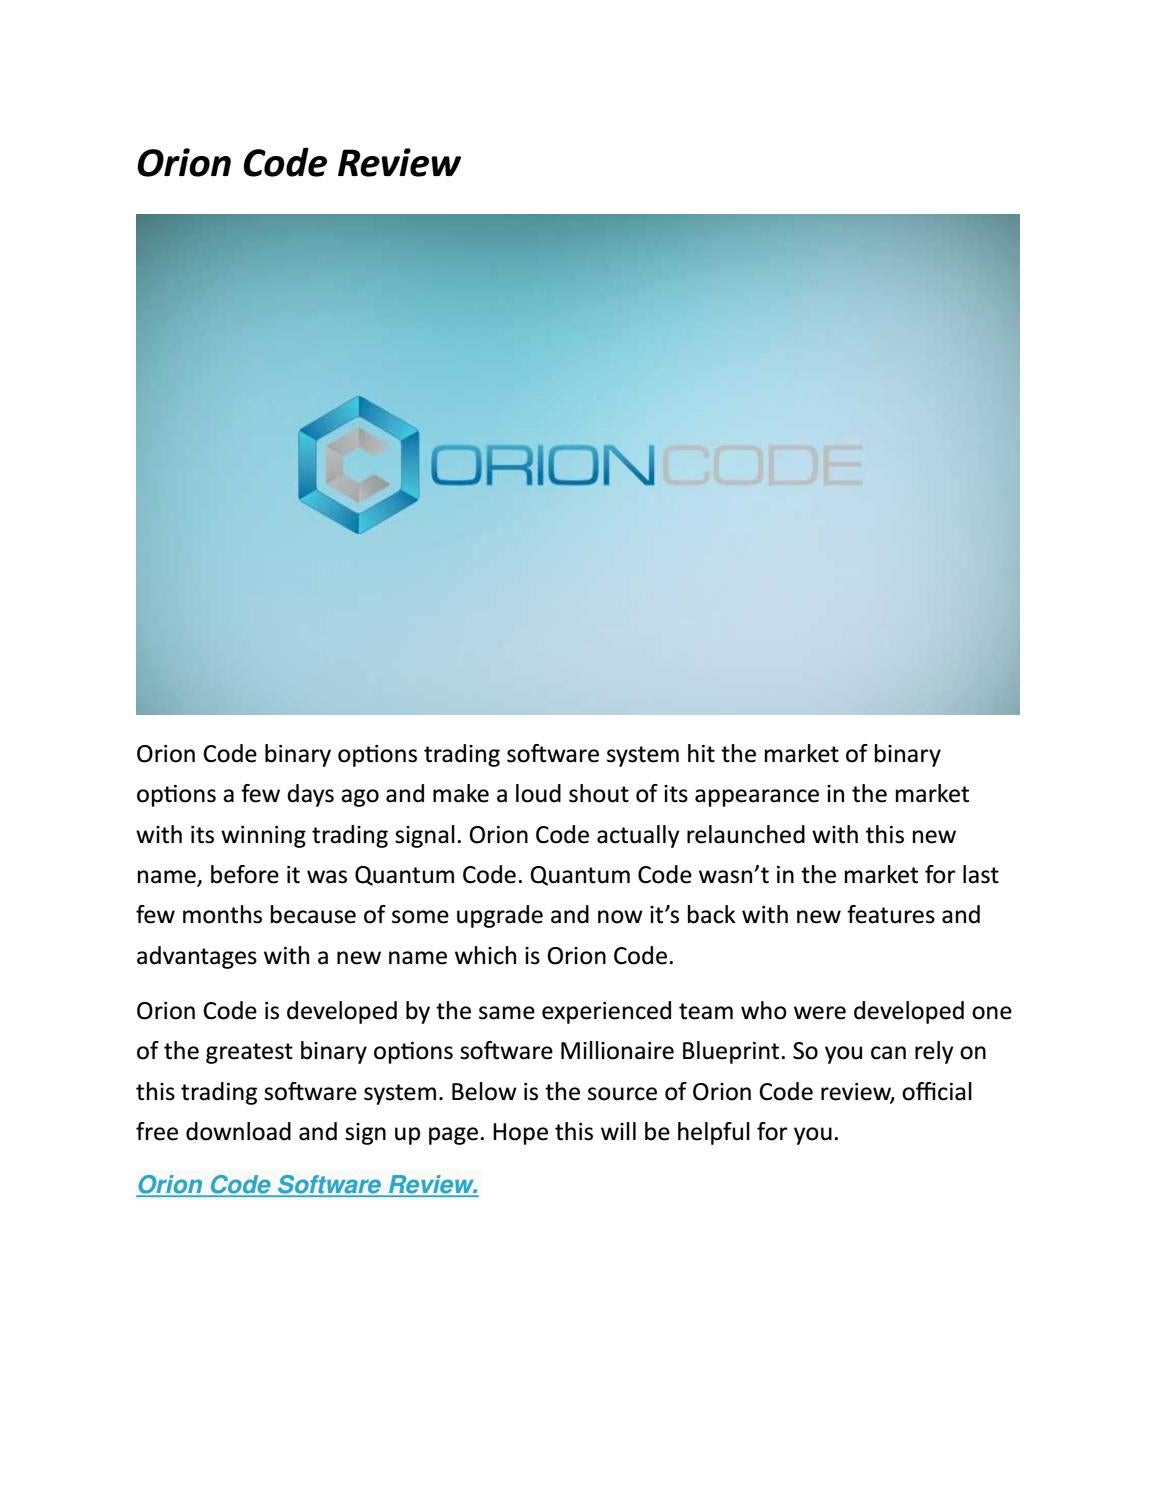 Orion code review by binary software issuu malvernweather Images